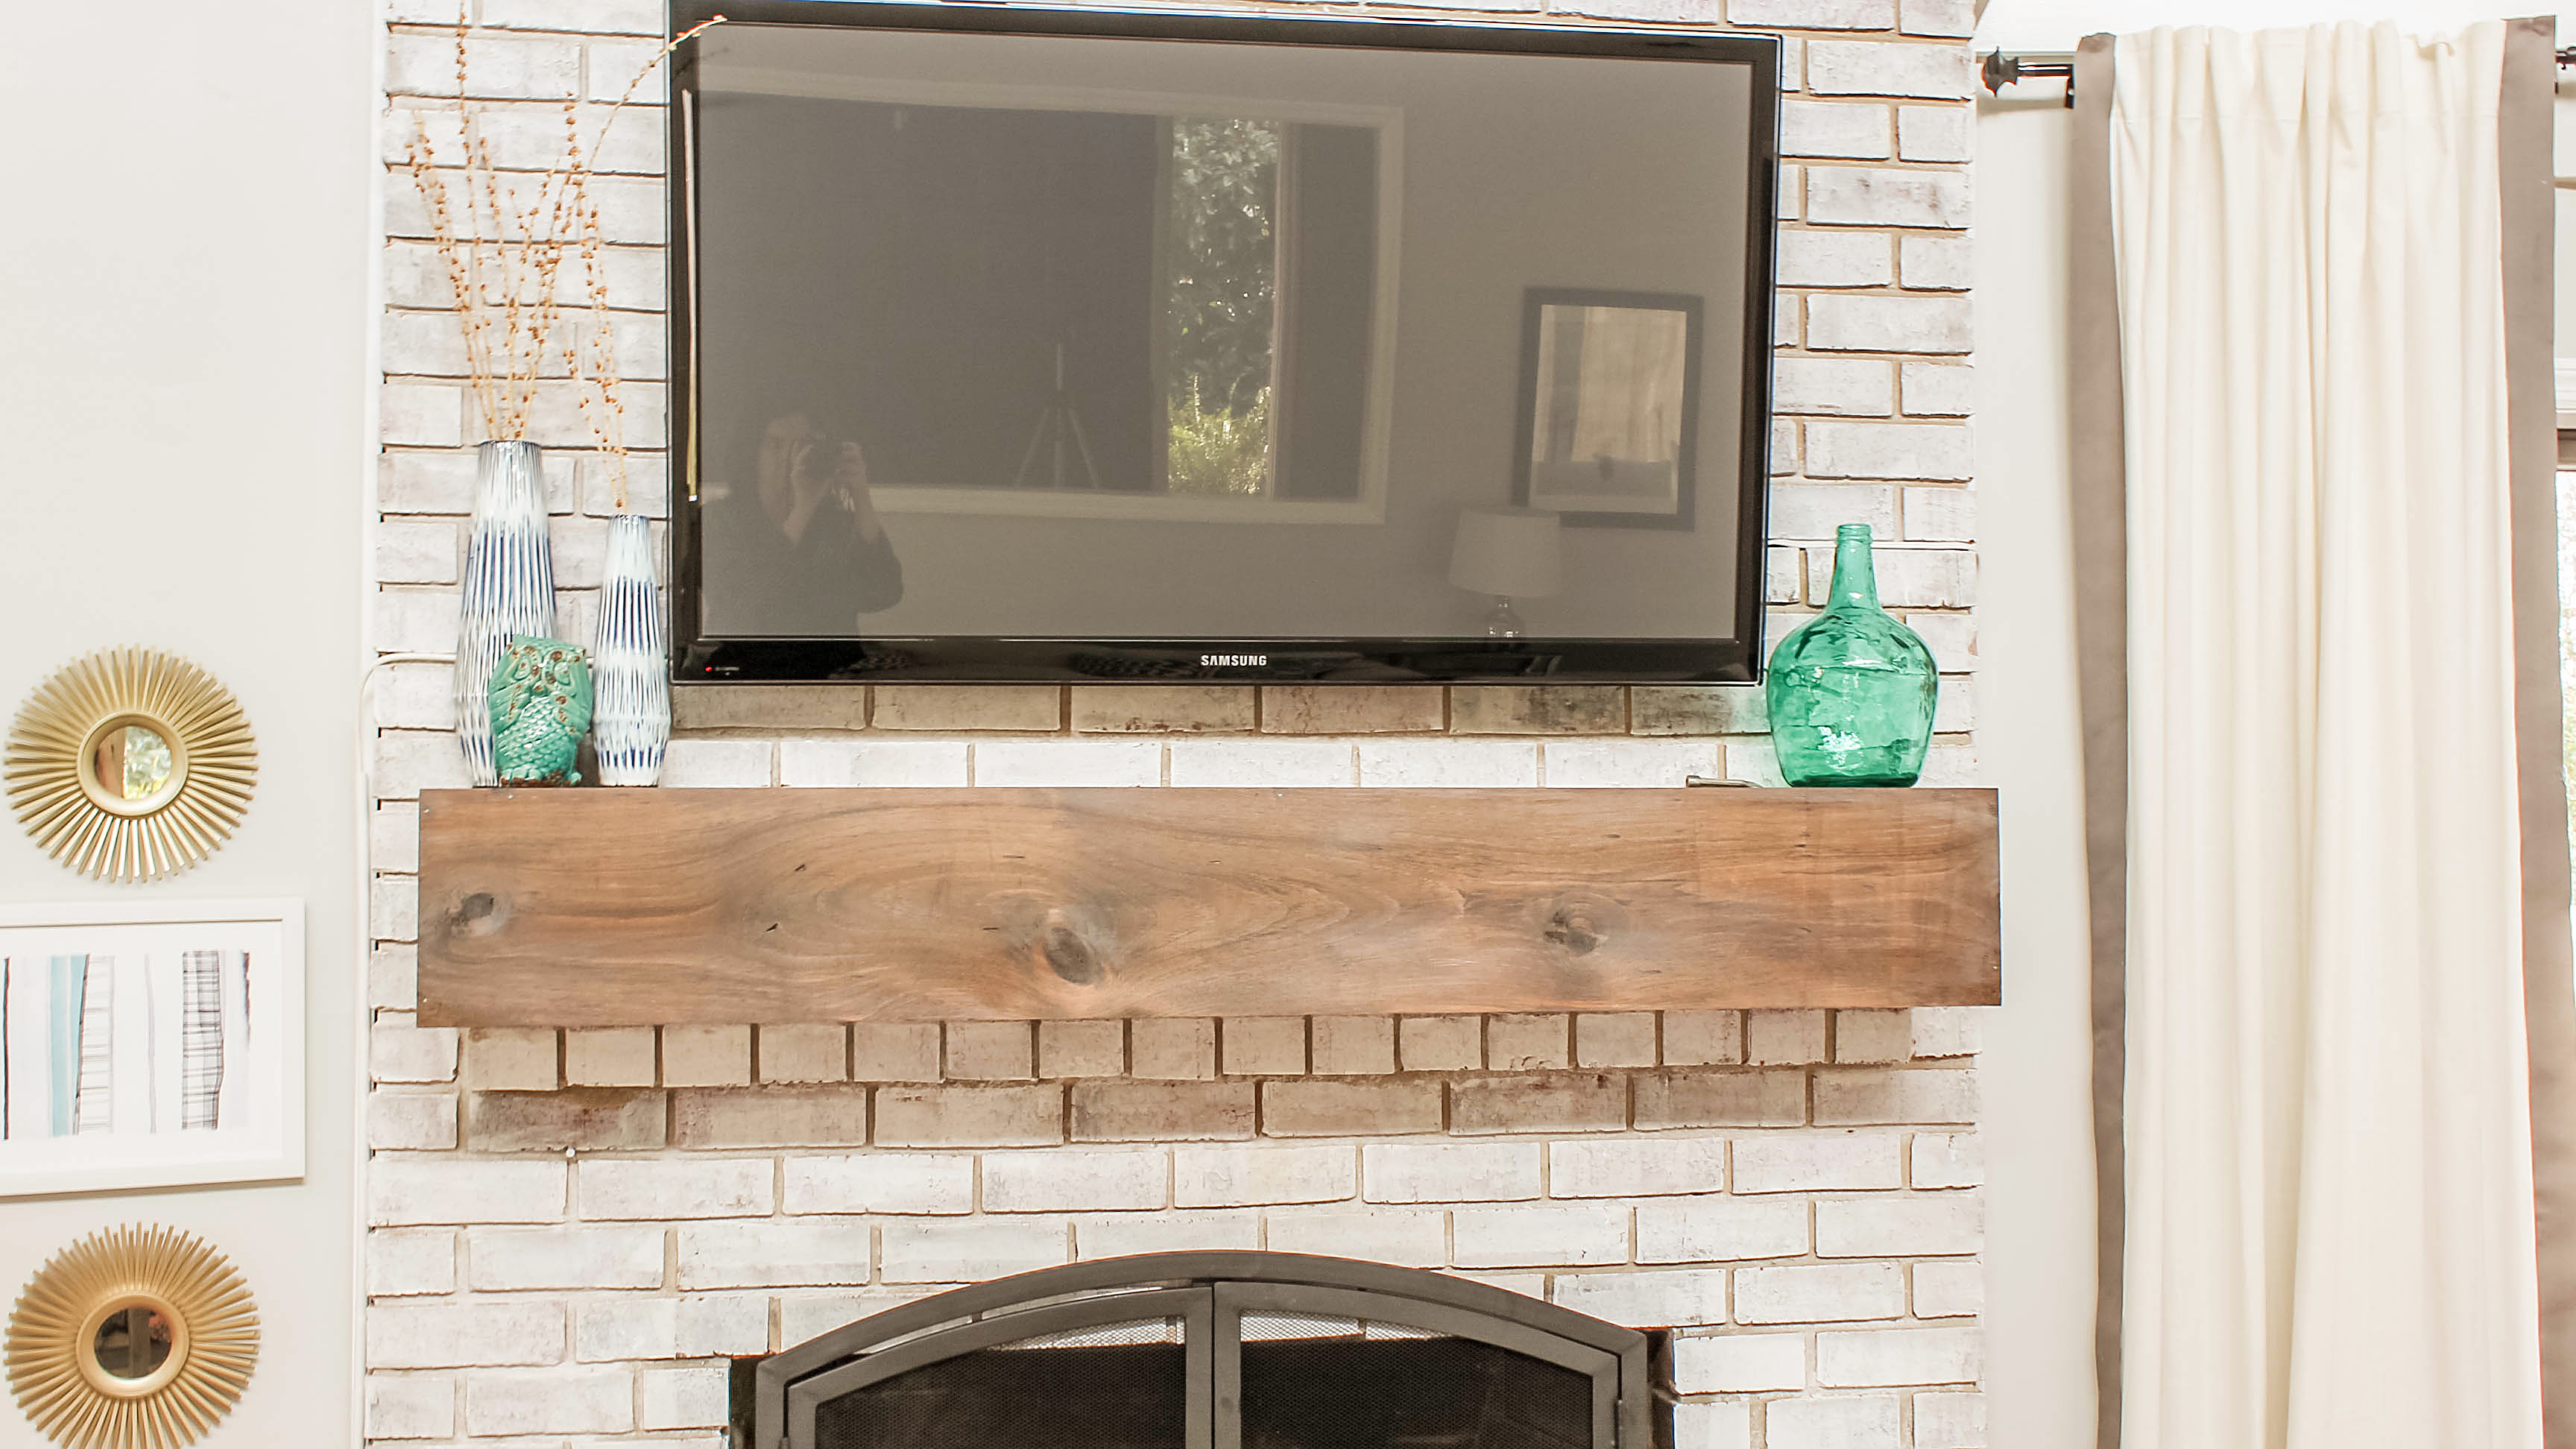 Fireplace Tv Mount How To Mount A Tv Over A Brick Fireplace And Hide The Wires